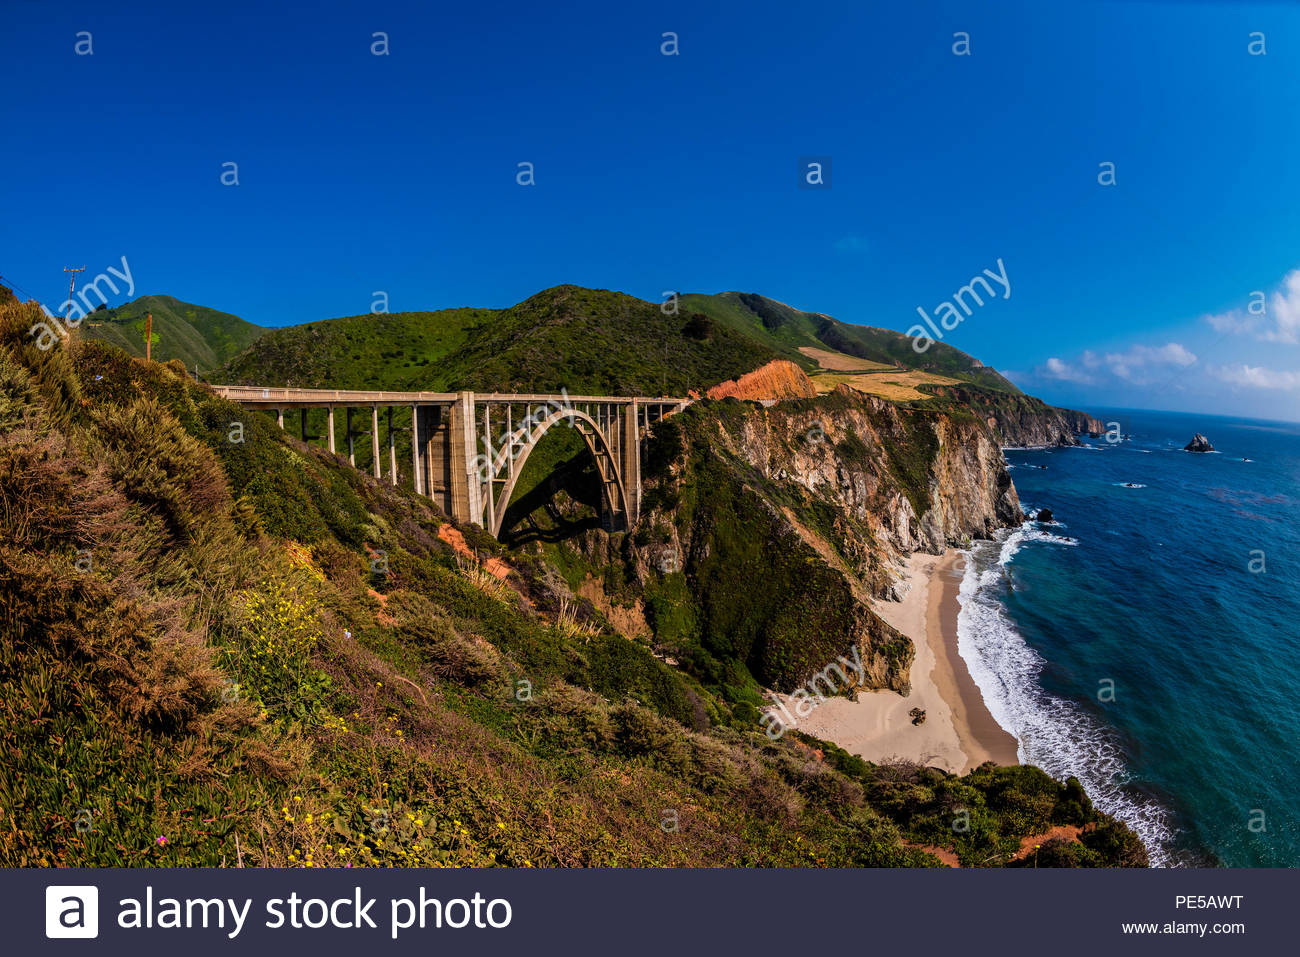 La Bixby puente a lo largo de la costa de Big Sur entre Carmel Highlands y Big Sur, California, Estados Unidos. Imagen De Stock